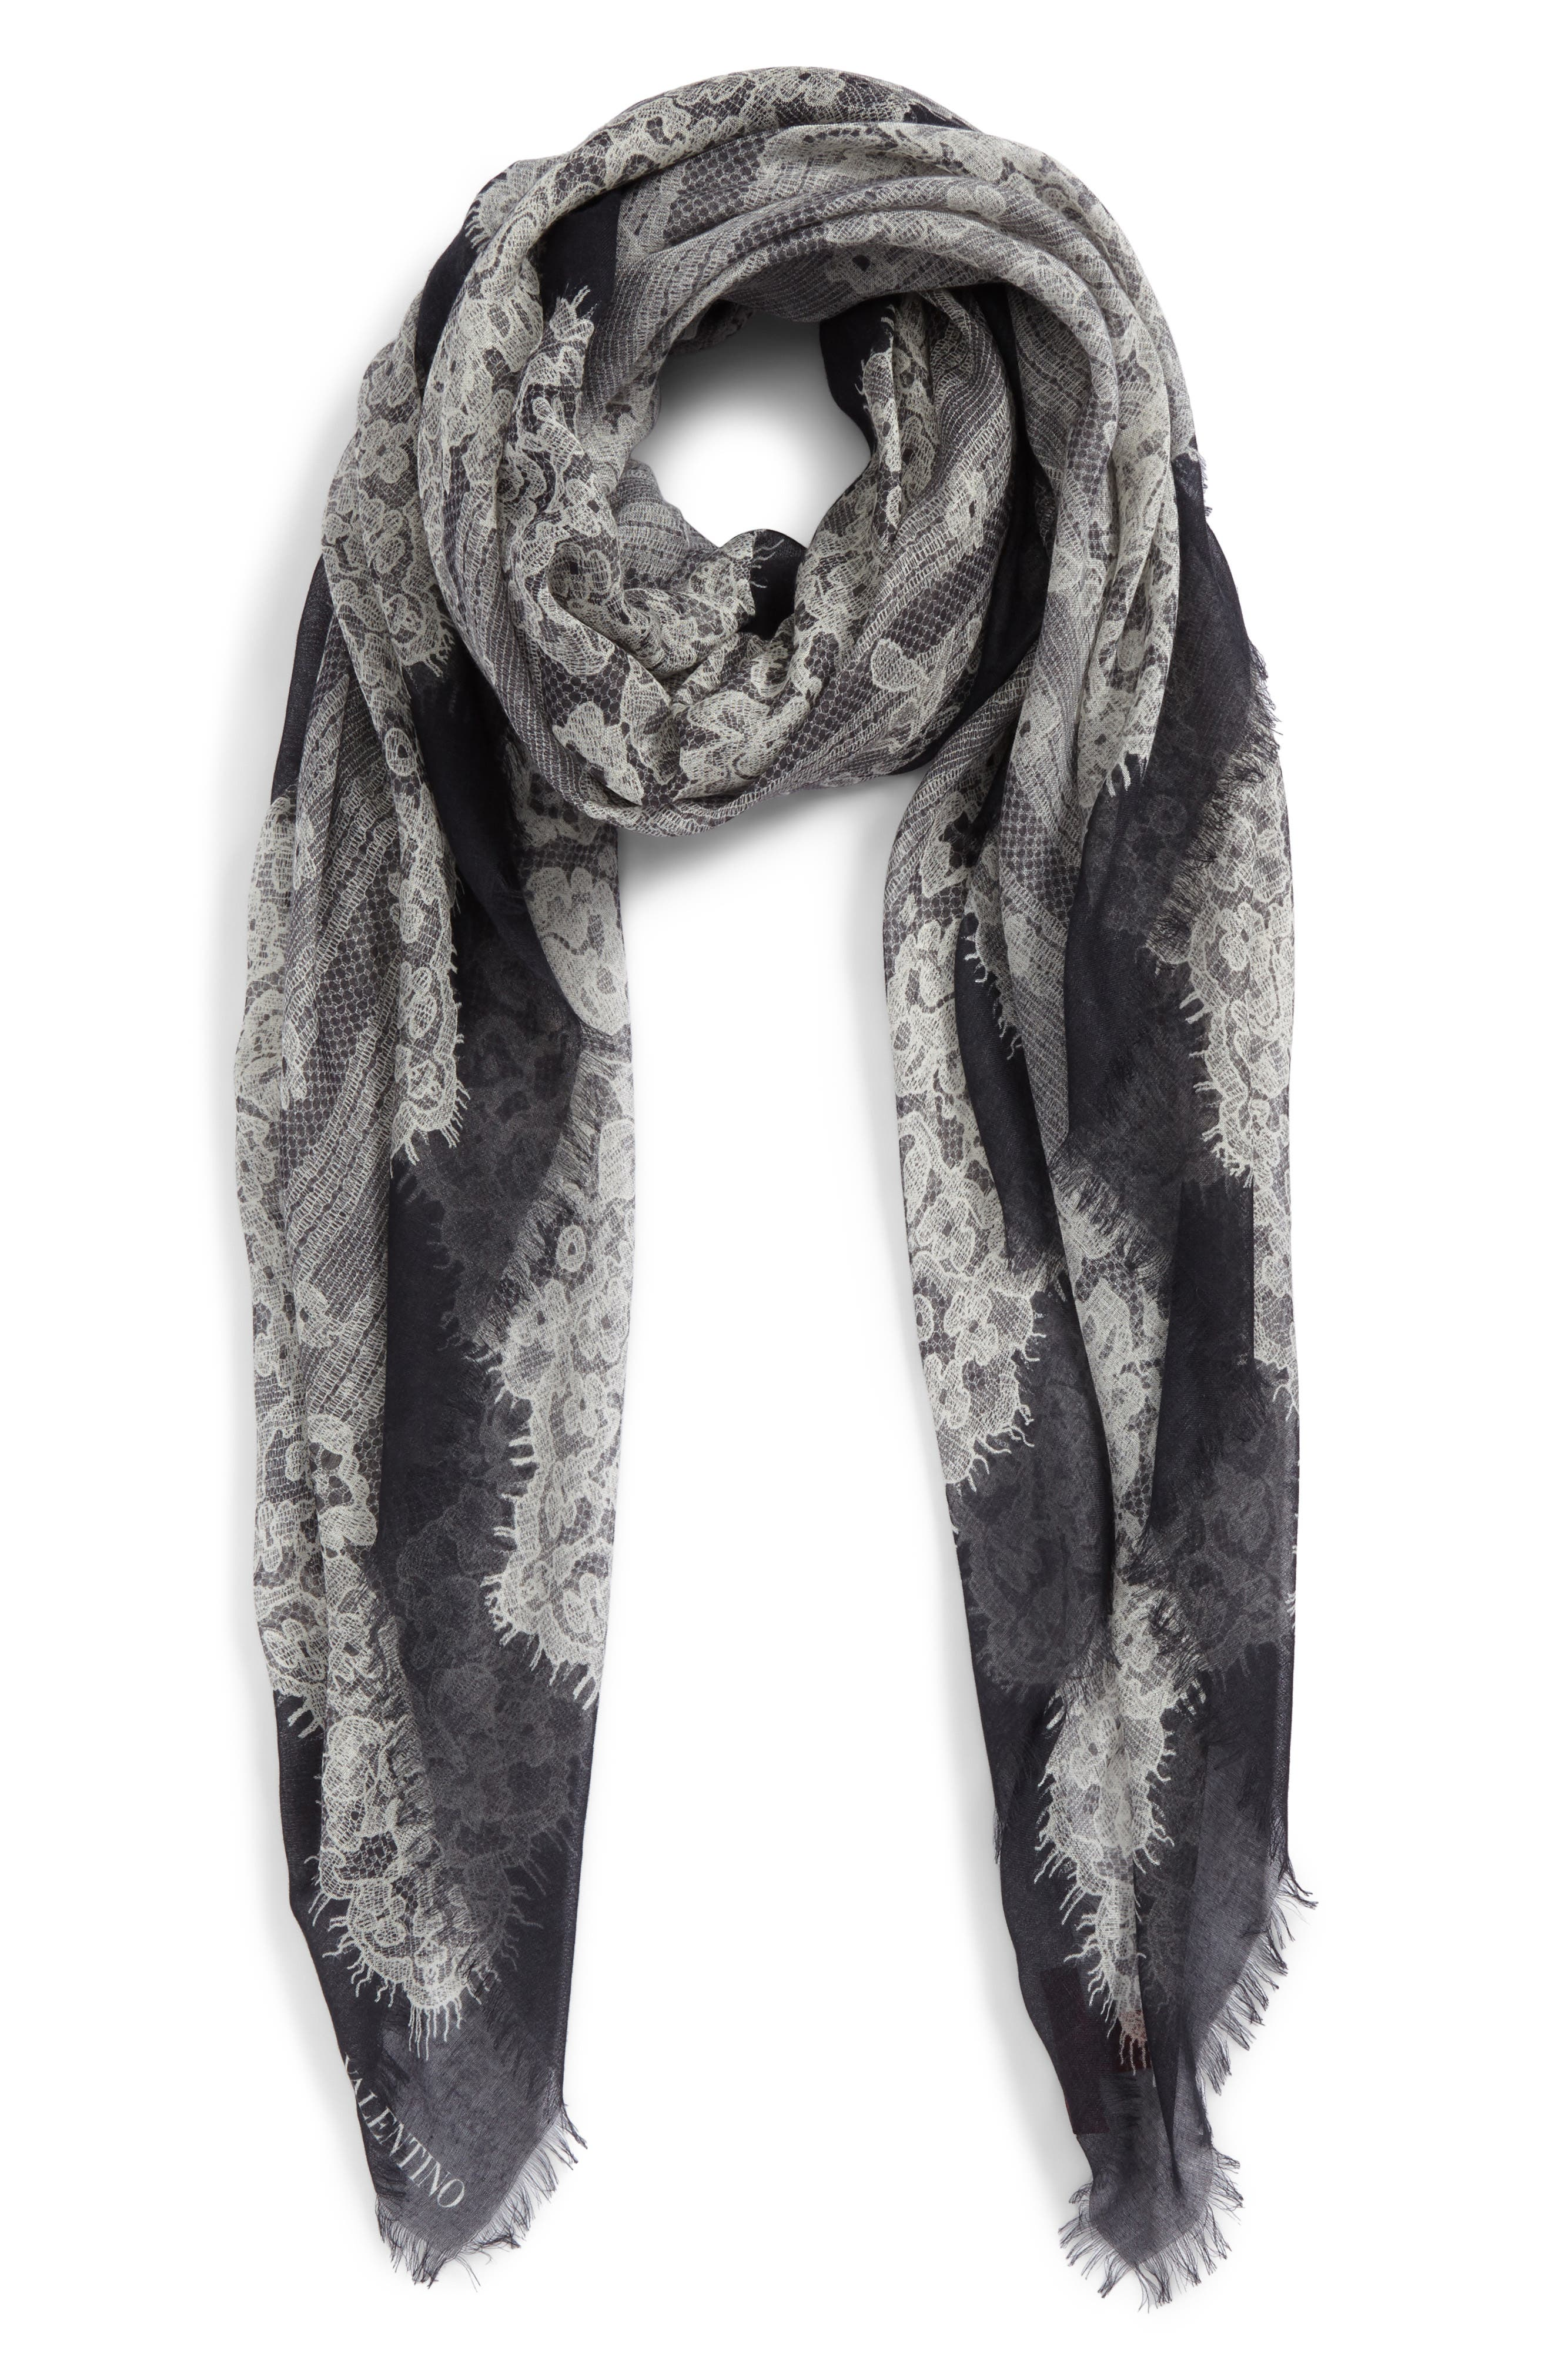 GARAVANI Grand Hauteur Lace Print Wrap,                             Alternate thumbnail 2, color,                             0No Nero